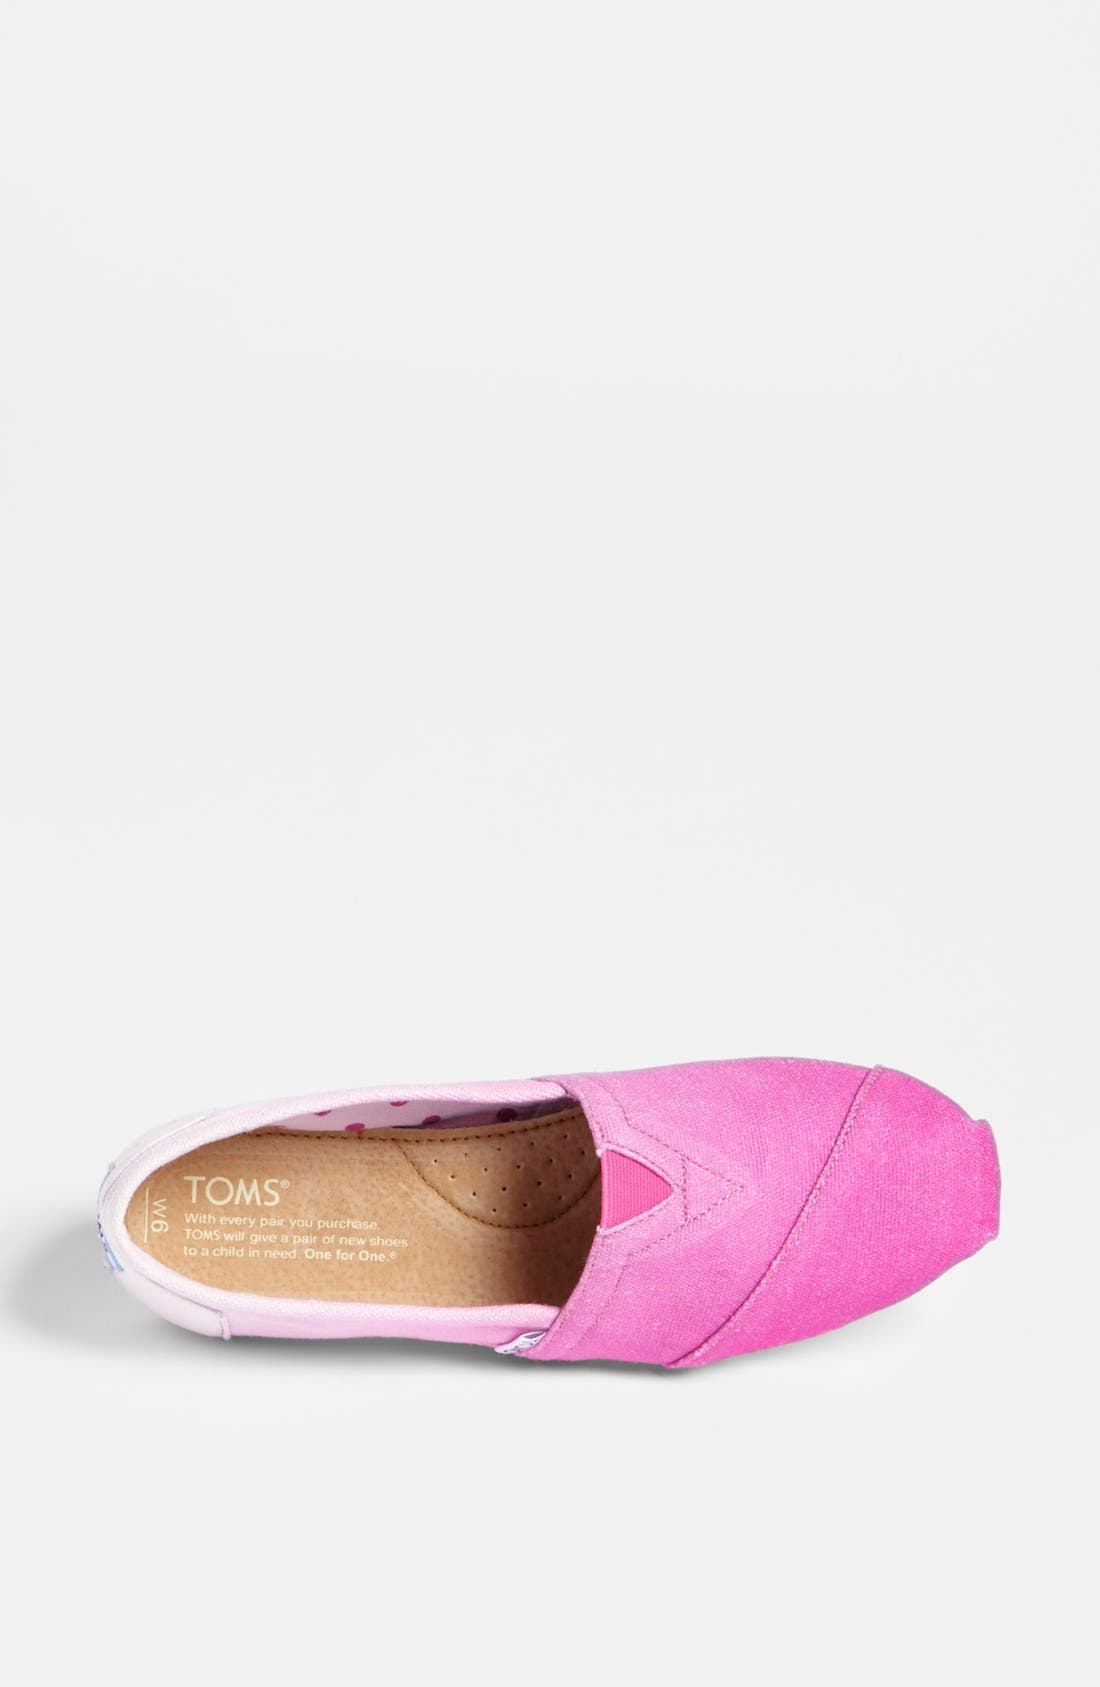 Alternate Image 3  - TOMS 'Classic - Pink Ombré' Slip-On (Women) (Exclusive Color)